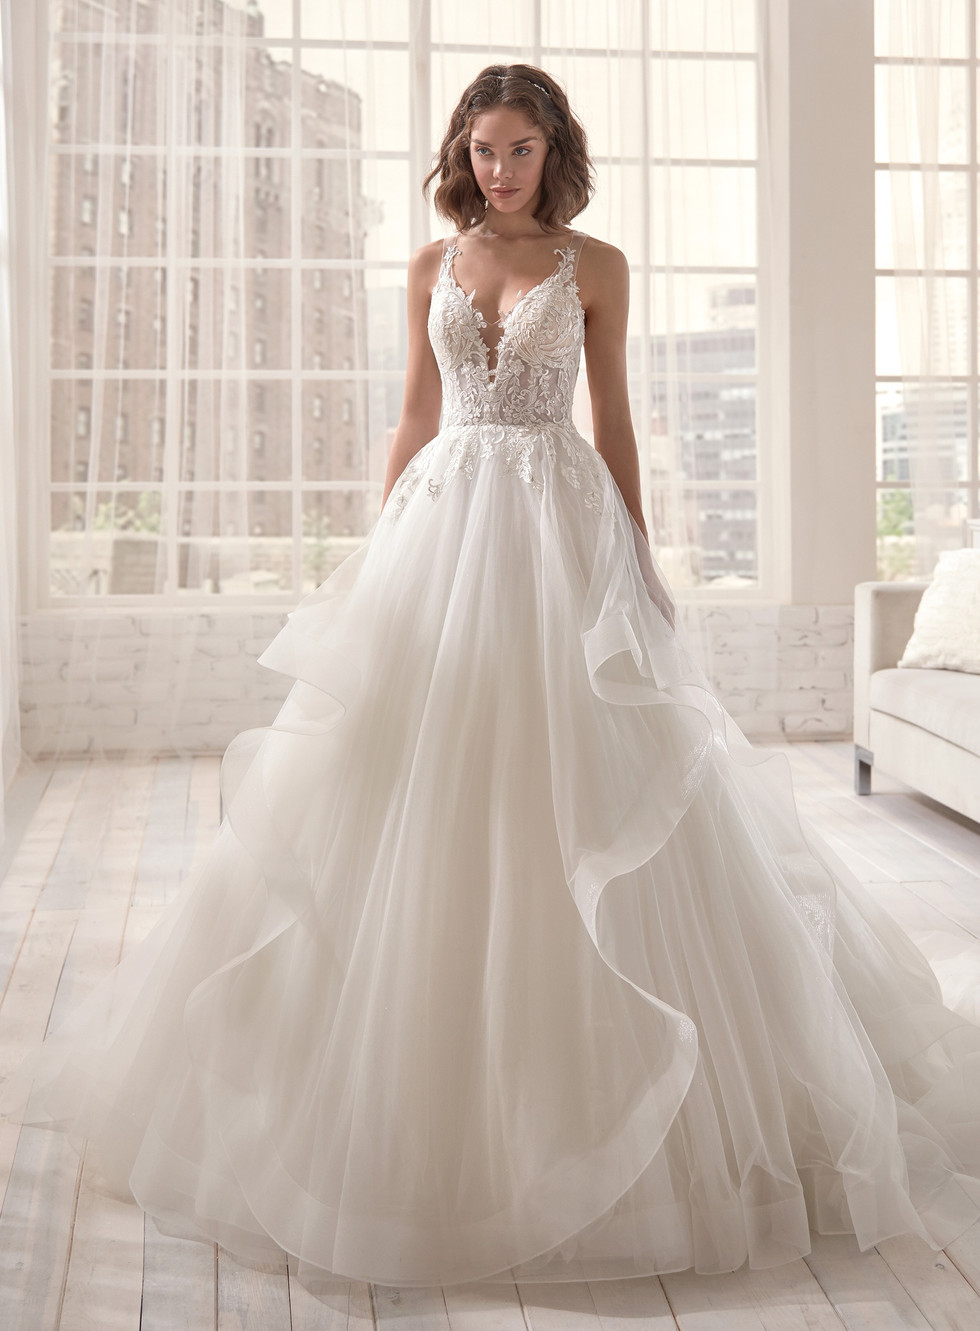 Gown Style - JOA20741